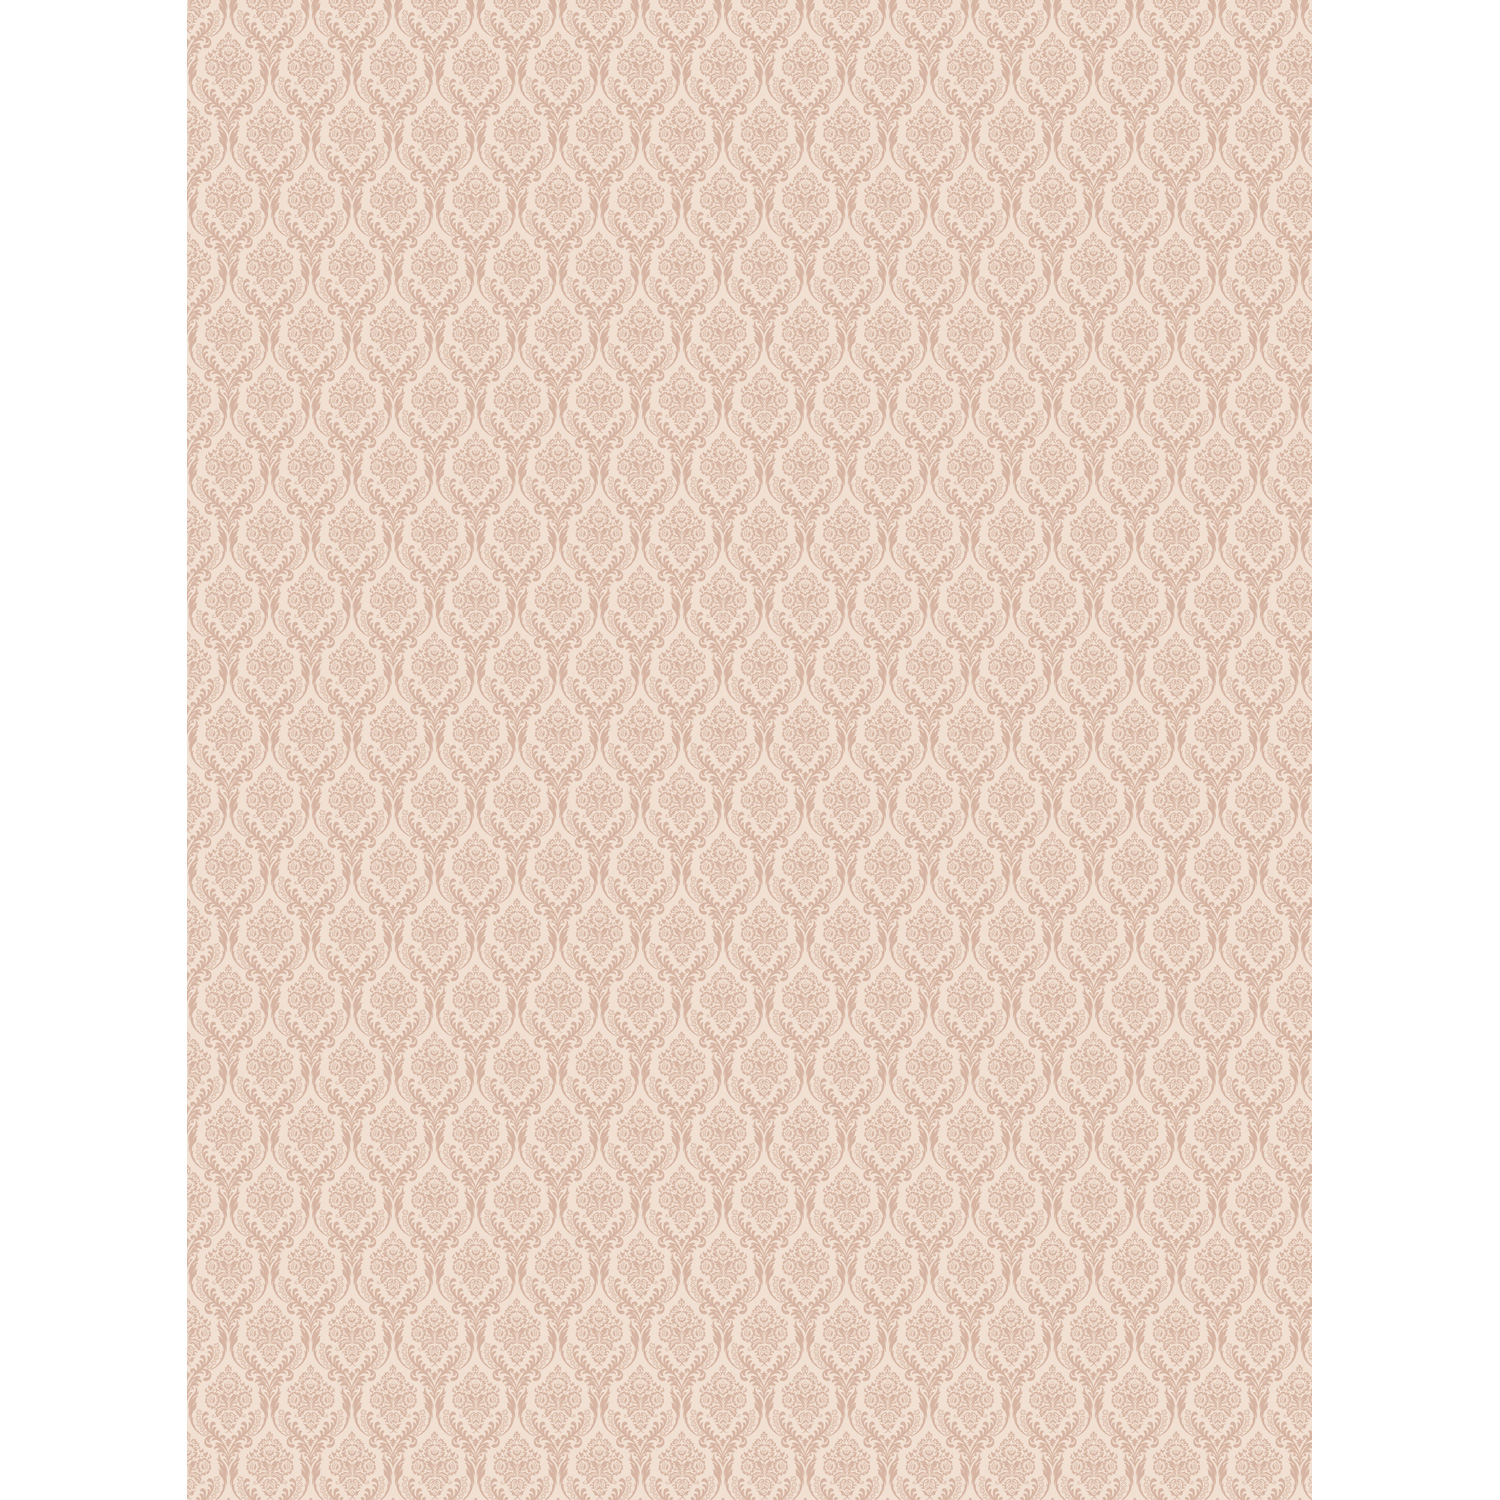 Modern Vintage 9' x 12' Chantilly Backdrop